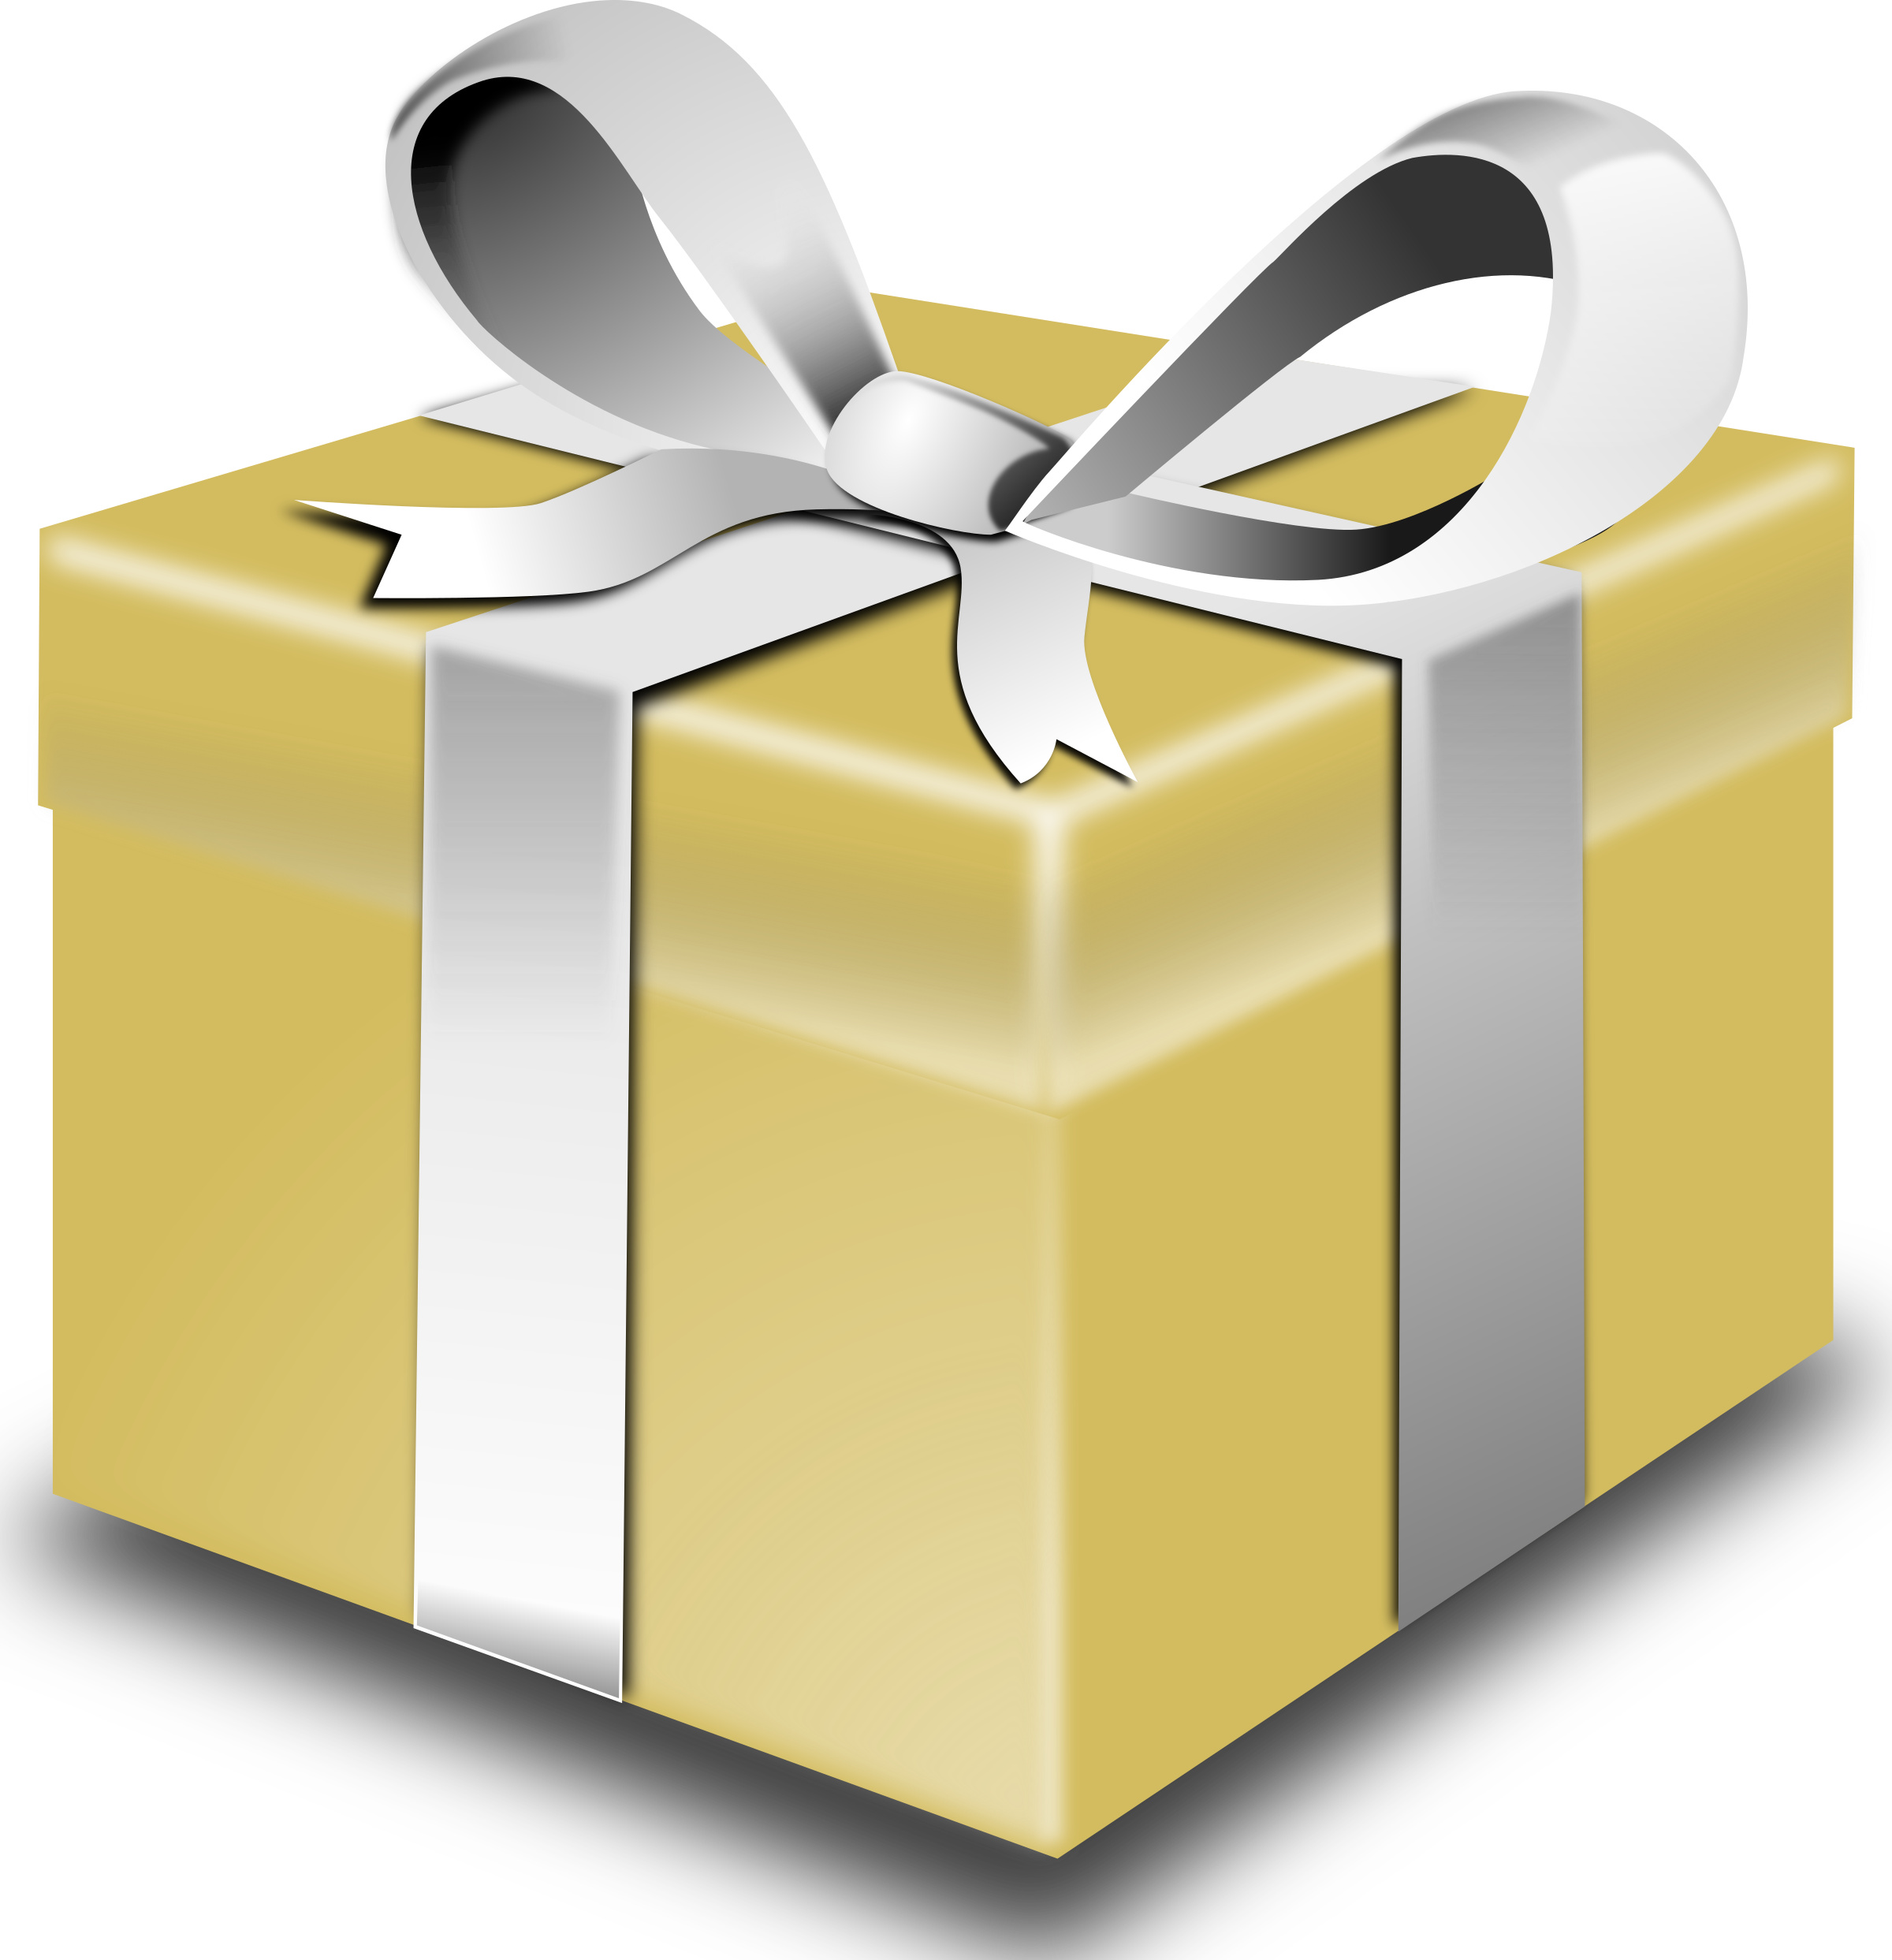 Gift clipart yellow. Gold present